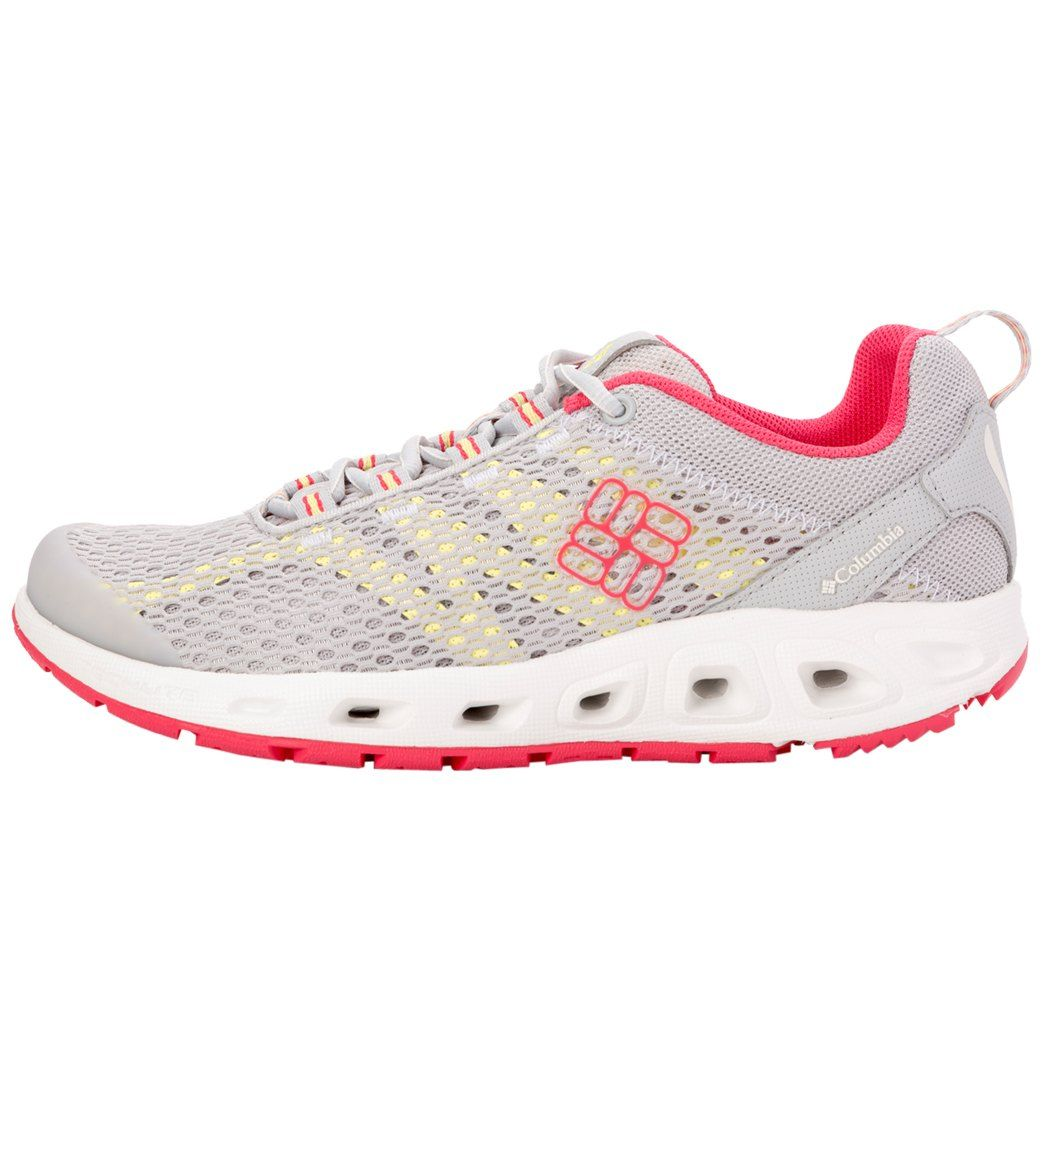 2545686d434 Columbia Women s Drainmaker III Water Shoes at SwimOutlet.com - The Web s  most popular swim shop